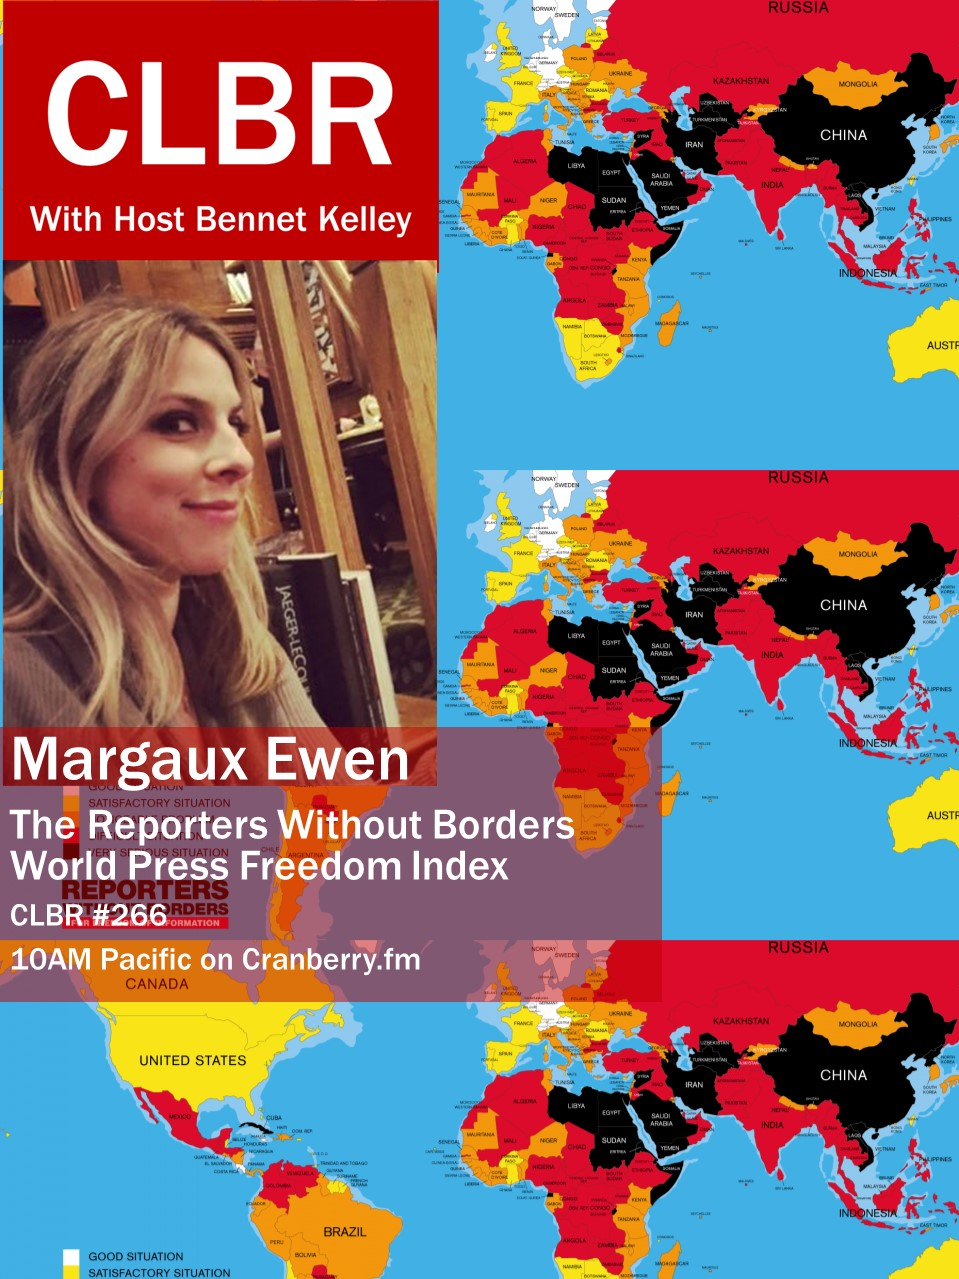 CLBR #266: RSF's Margaux Ewen on Cyber Censorship and Press Freedom